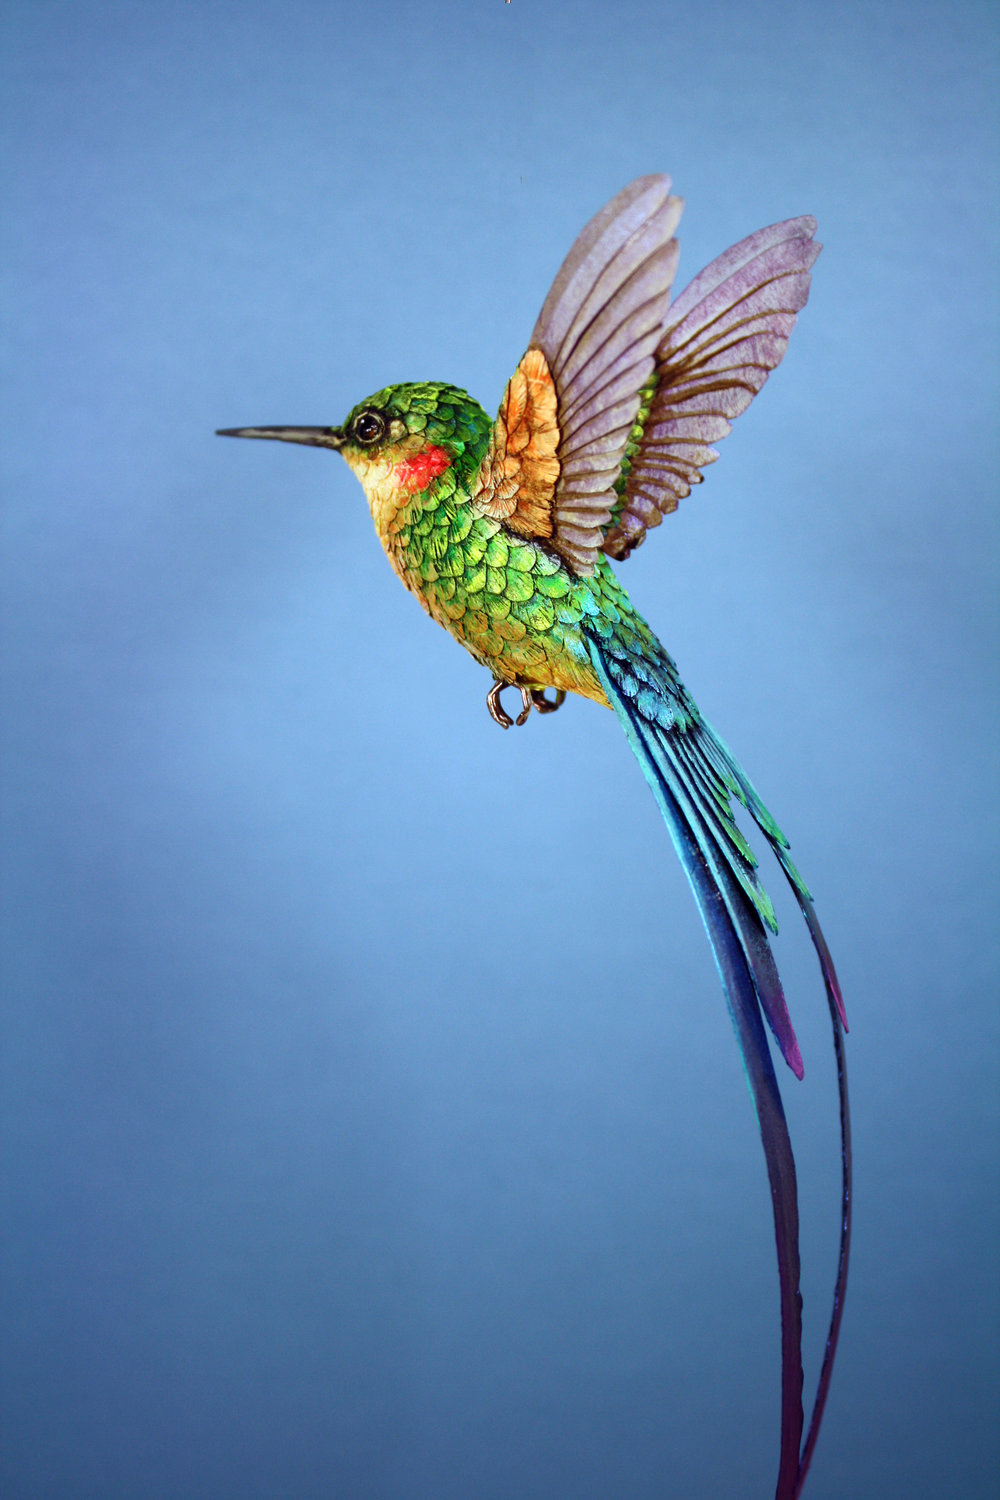 Each hummingbird takes around 40 hours to make.